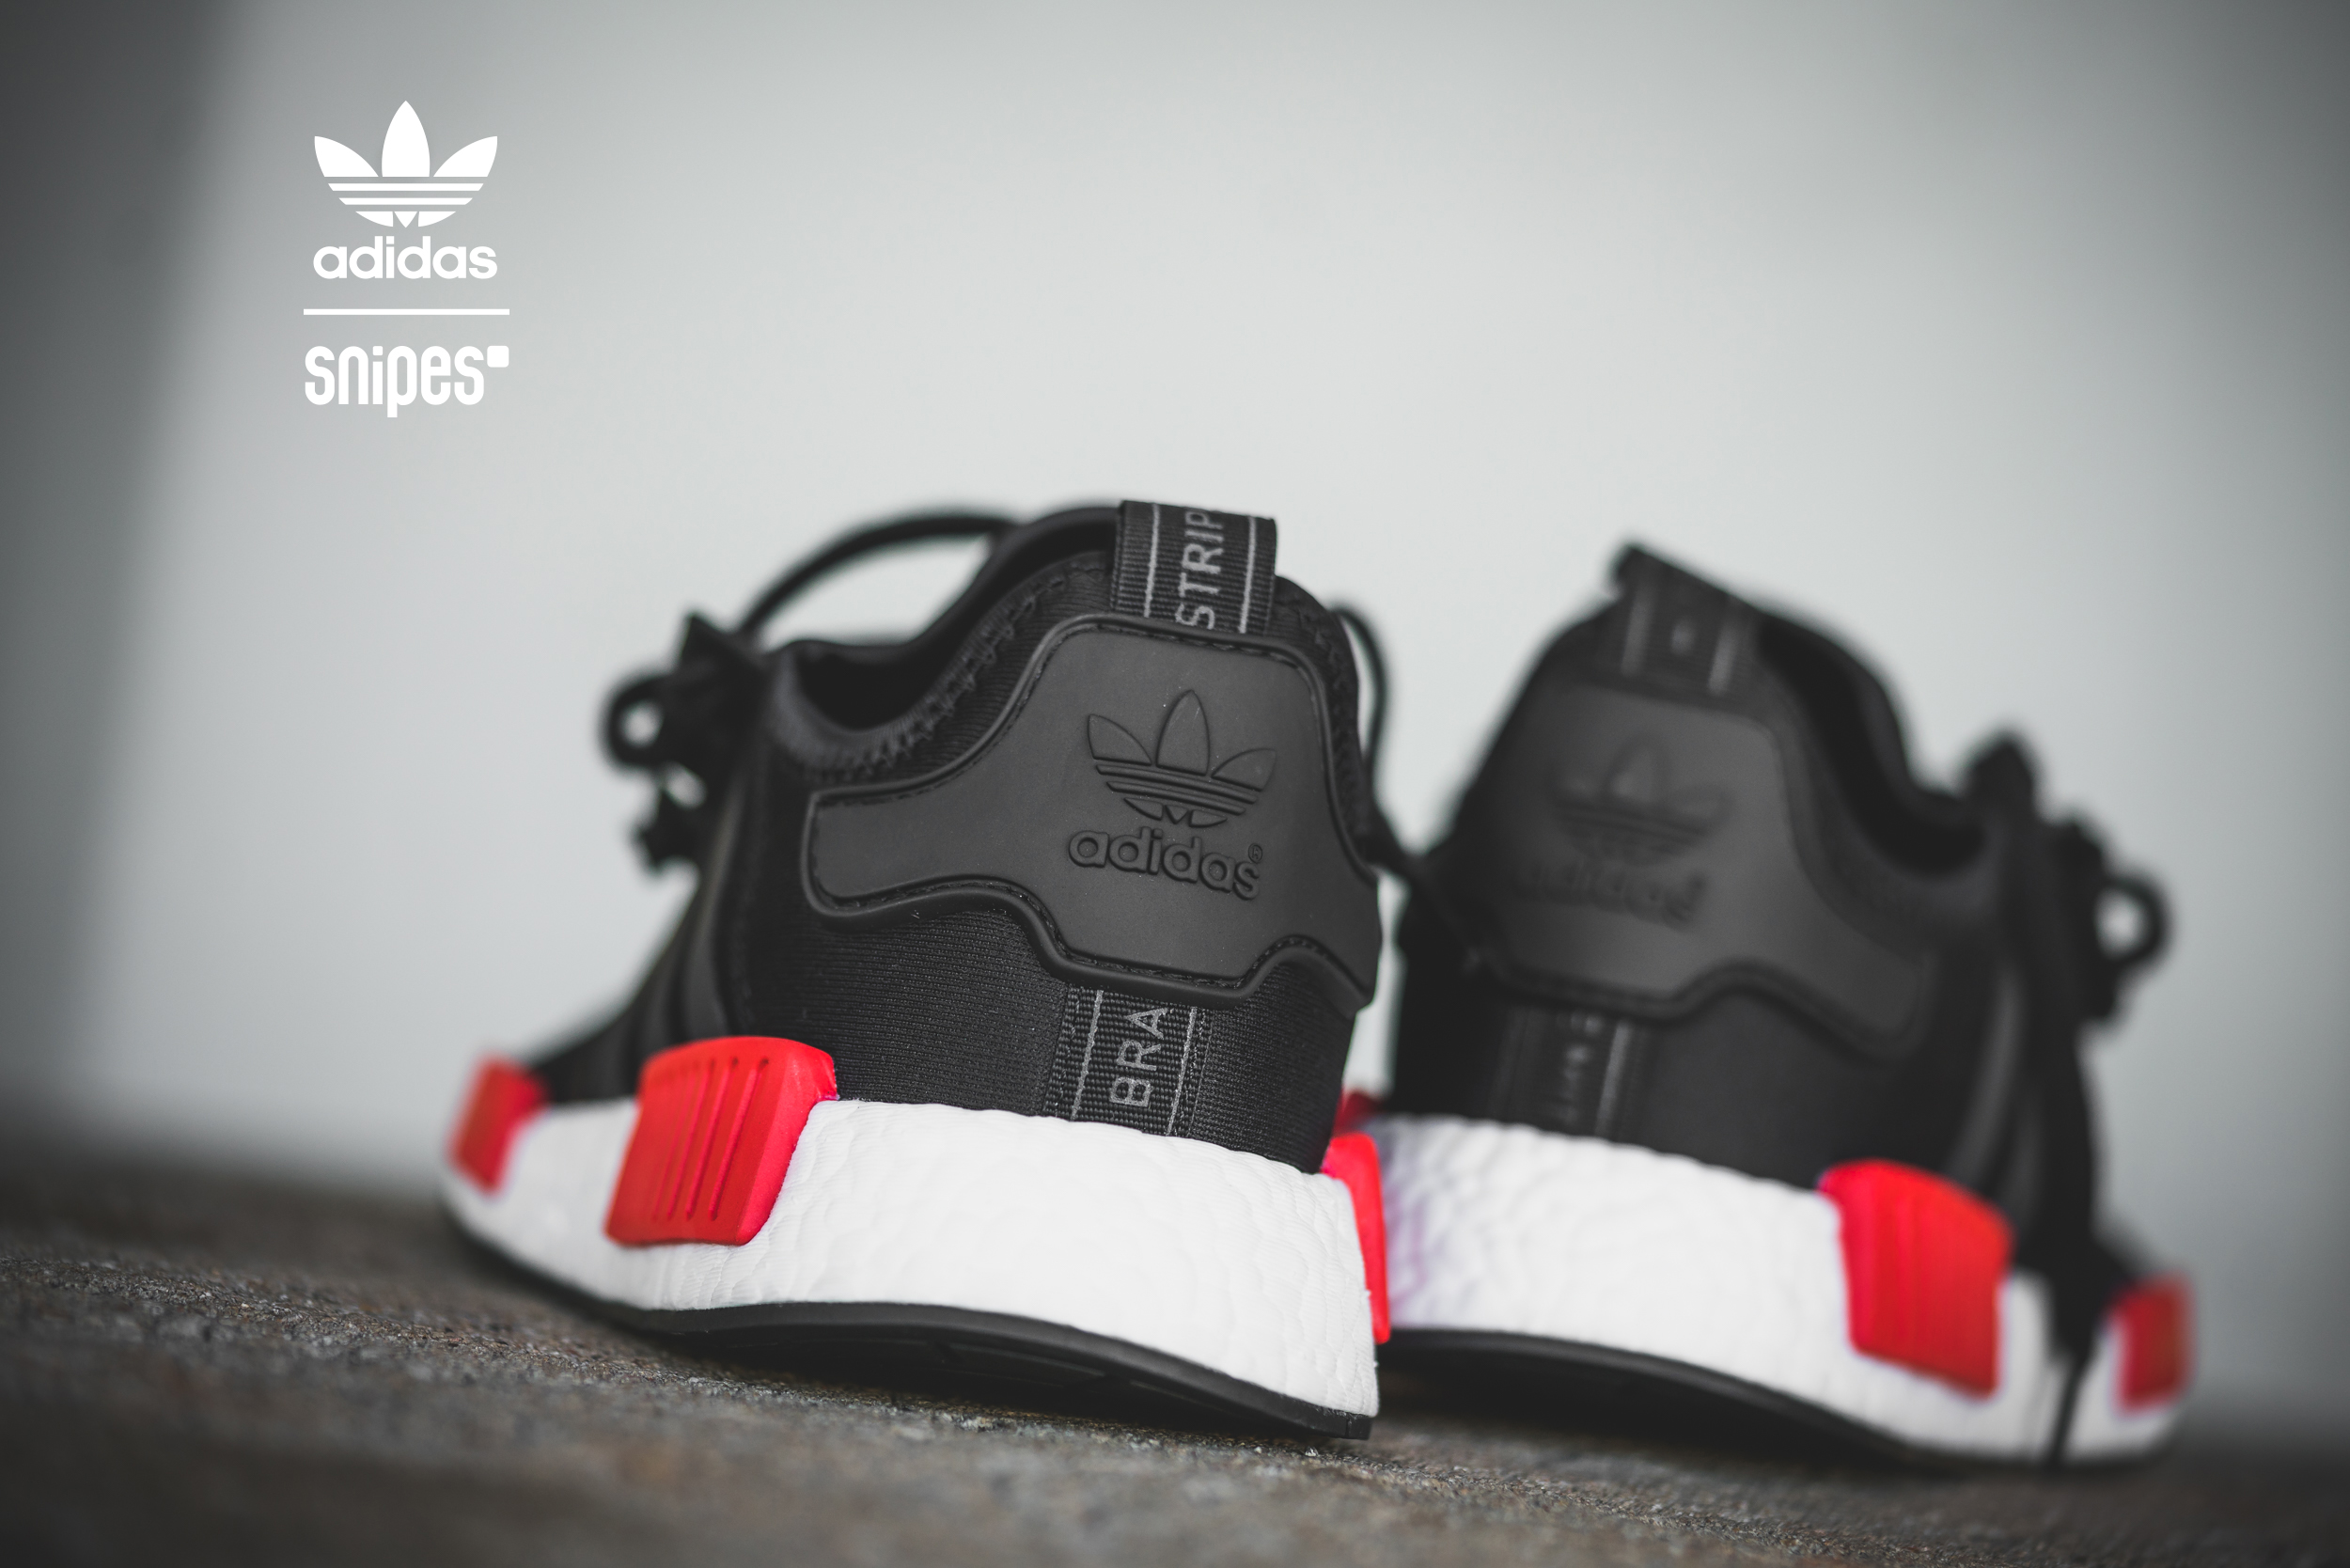 adidas_NMD_Runner_core_black-core_black-white_1013884-6